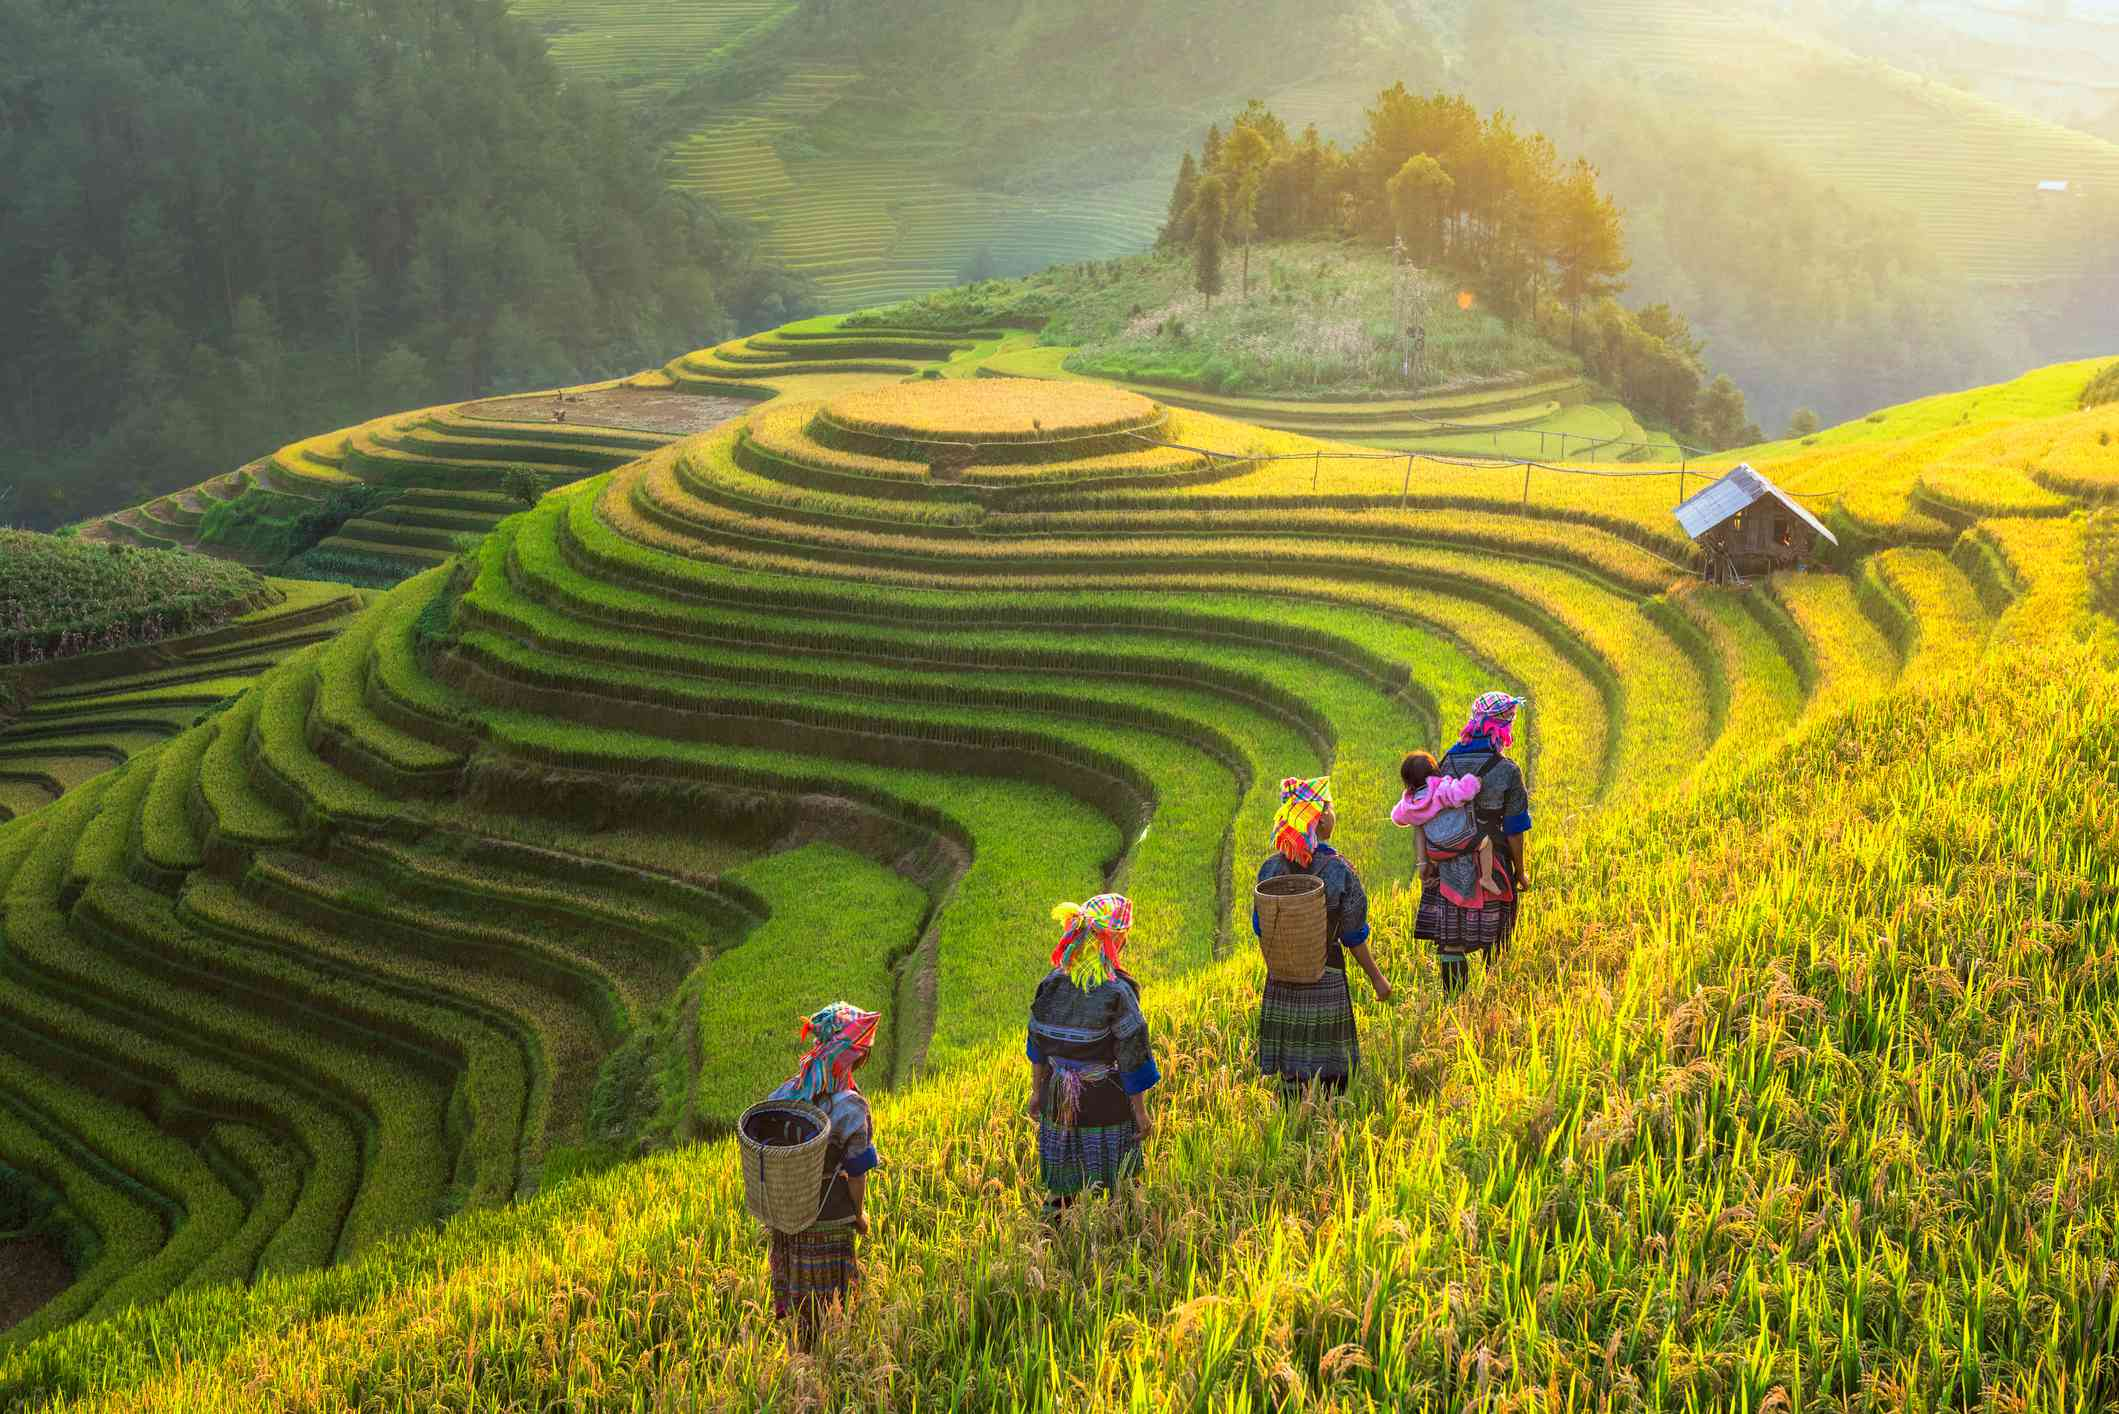 Rice fields and villagers in Sapa, Vietnam